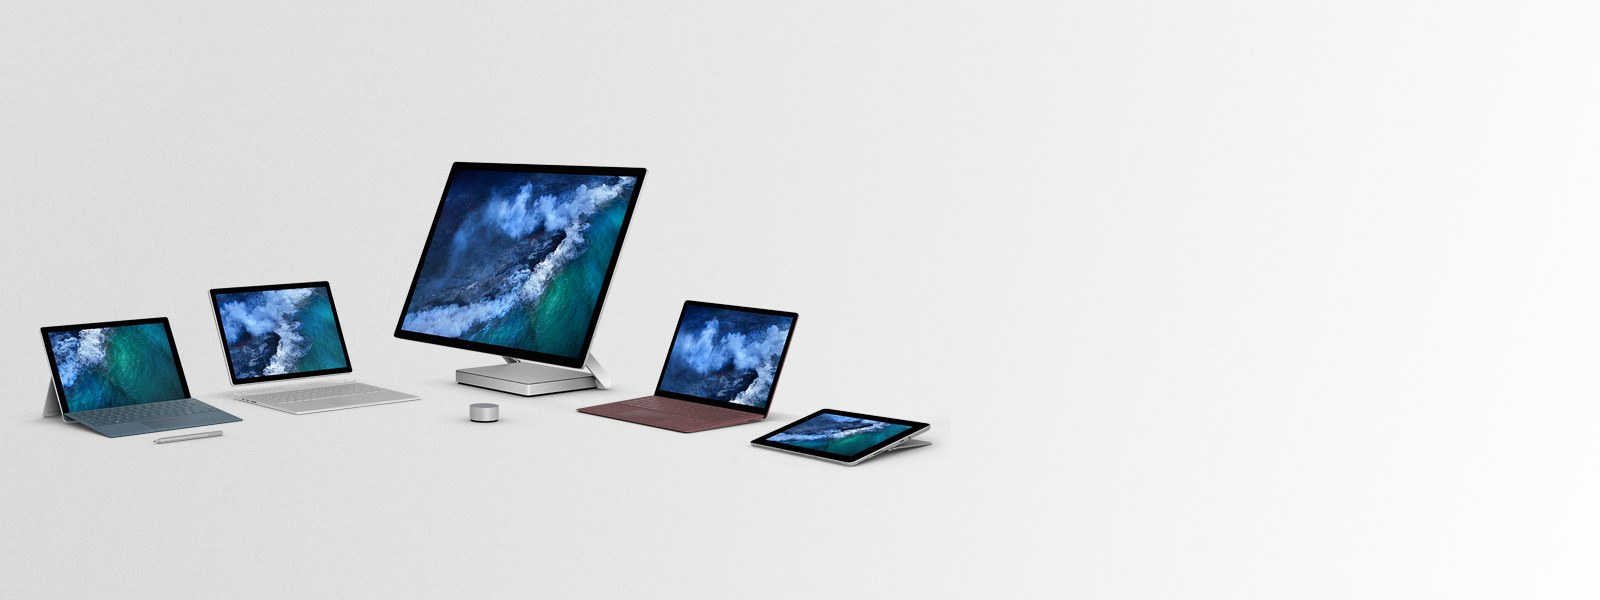 Die Surface-Familie – Surface Pro und Surface Pen, Surface Book 2, Surface Studio und Dial, Surface Laptop, Surface Go